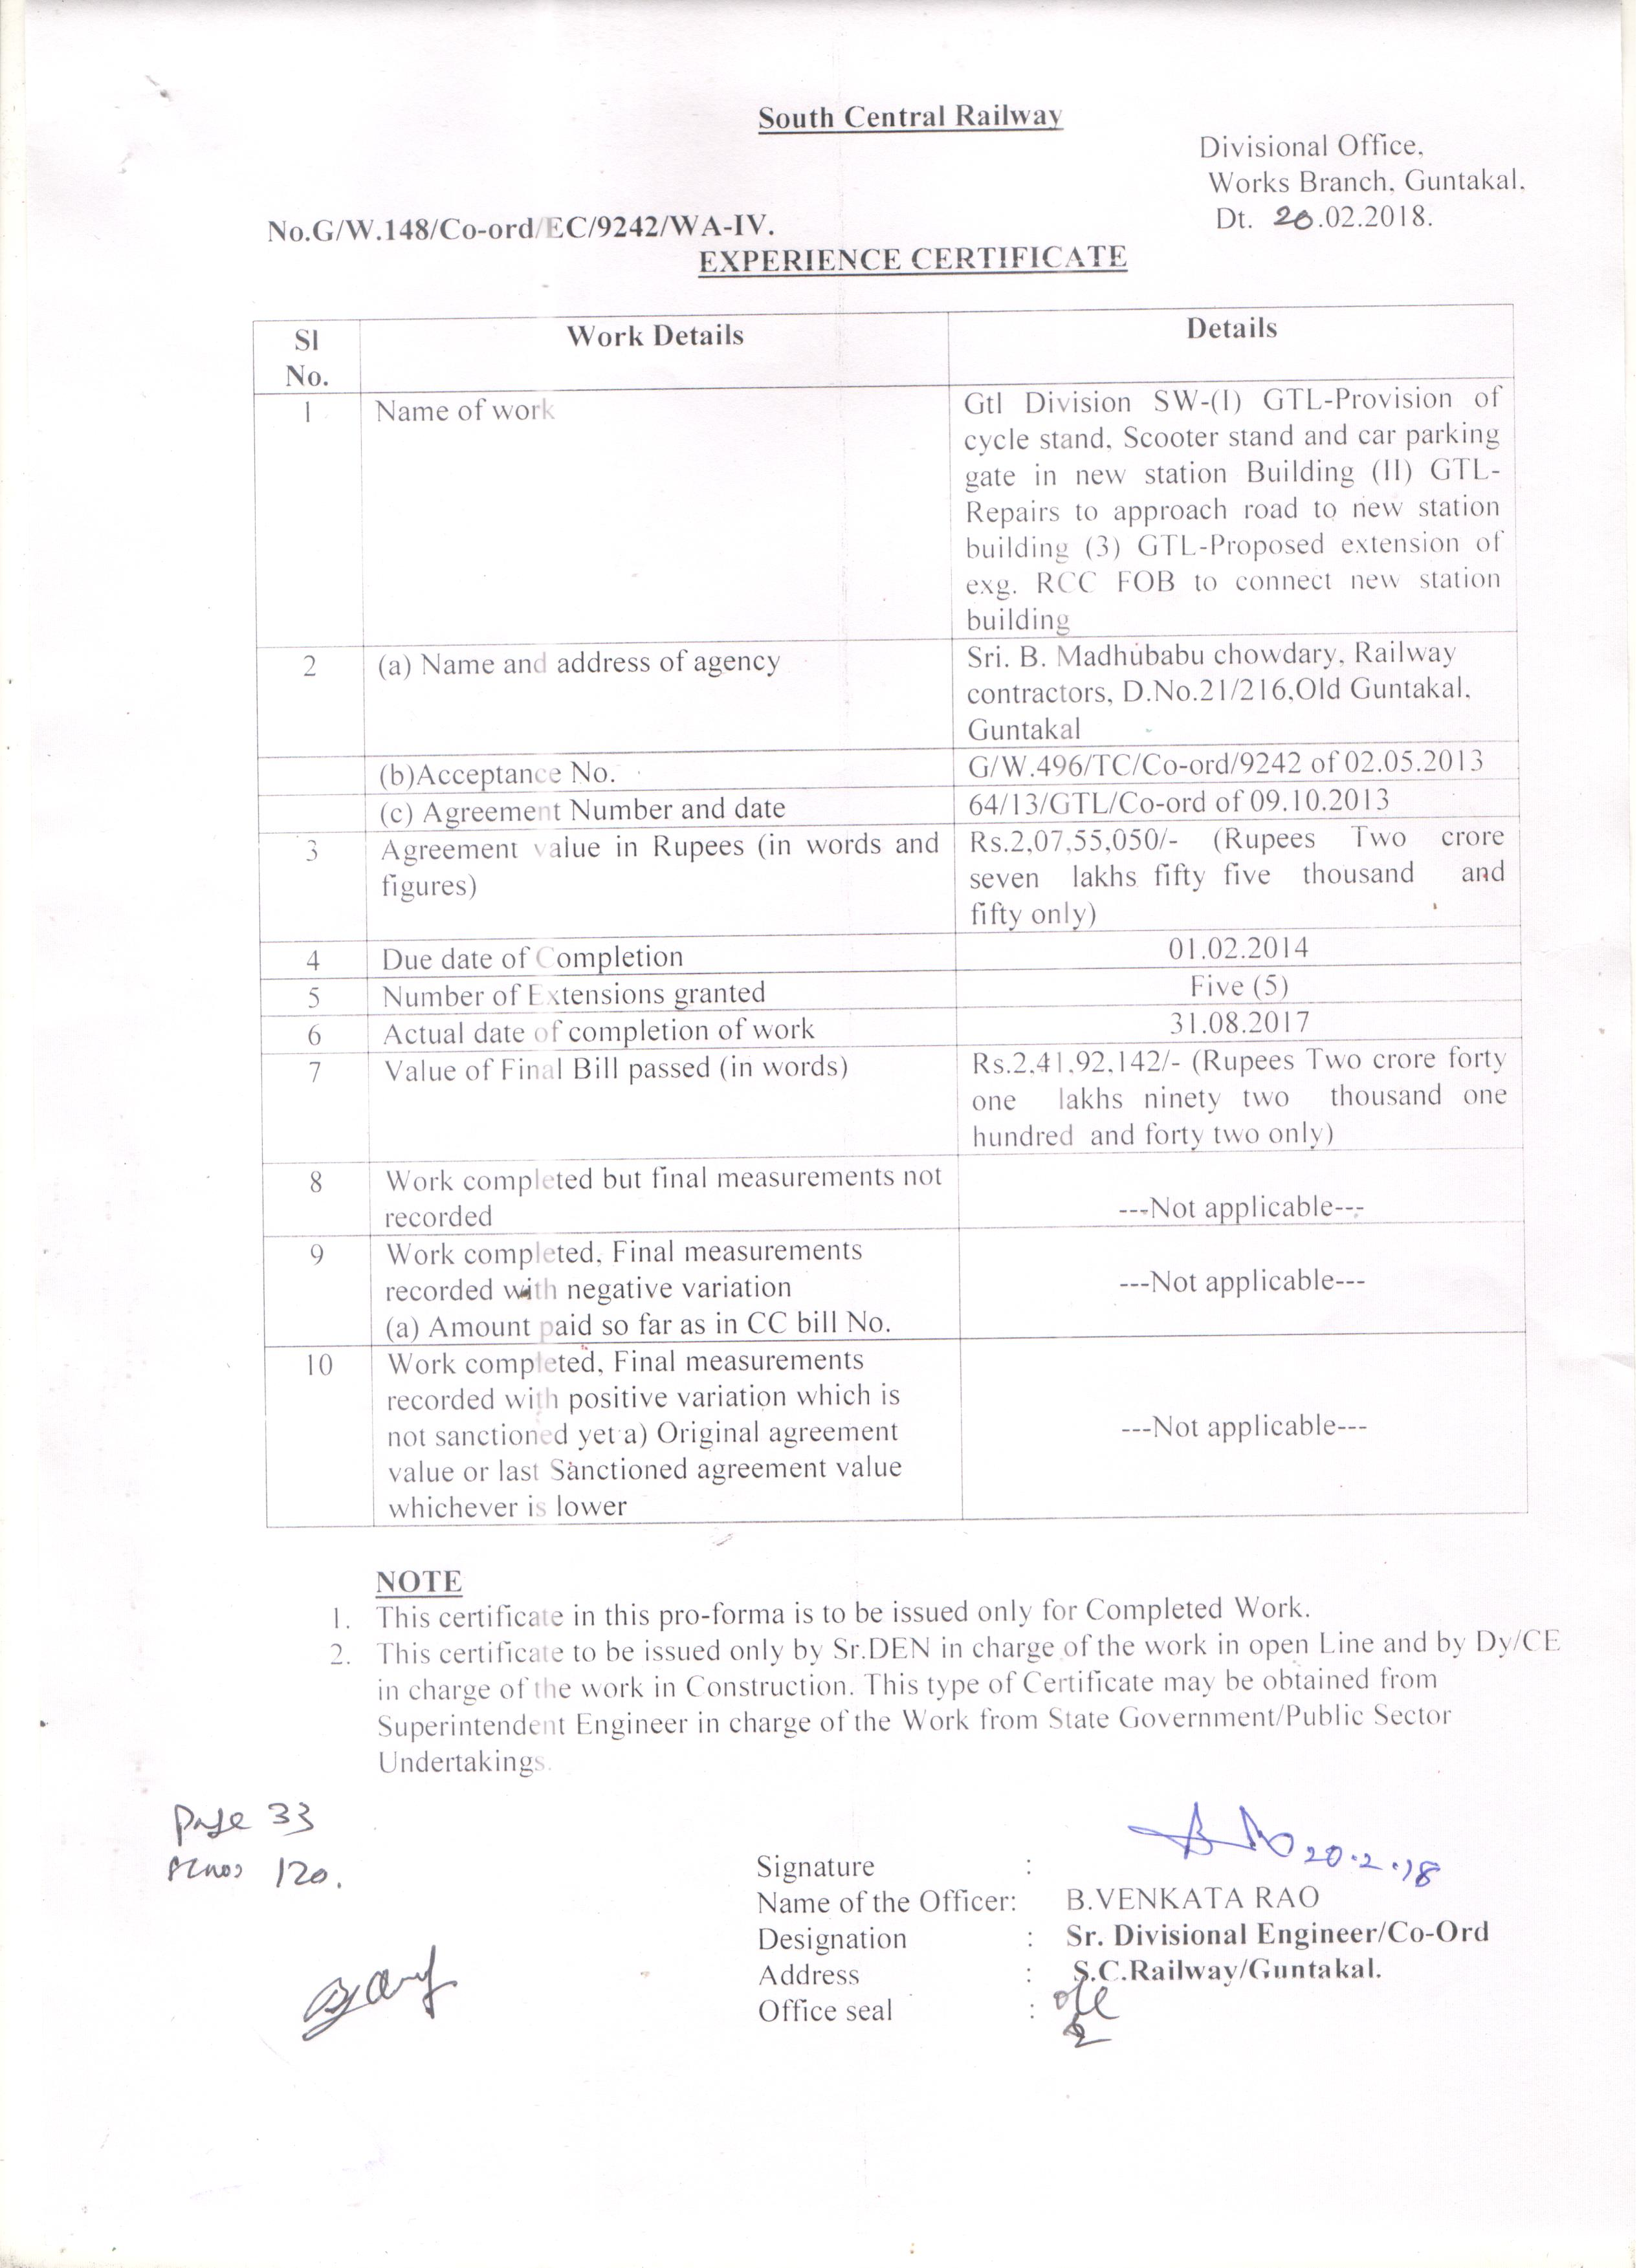 Scrdetails of experience certificate issued rcc fob to connect new station building download yelopaper Gallery